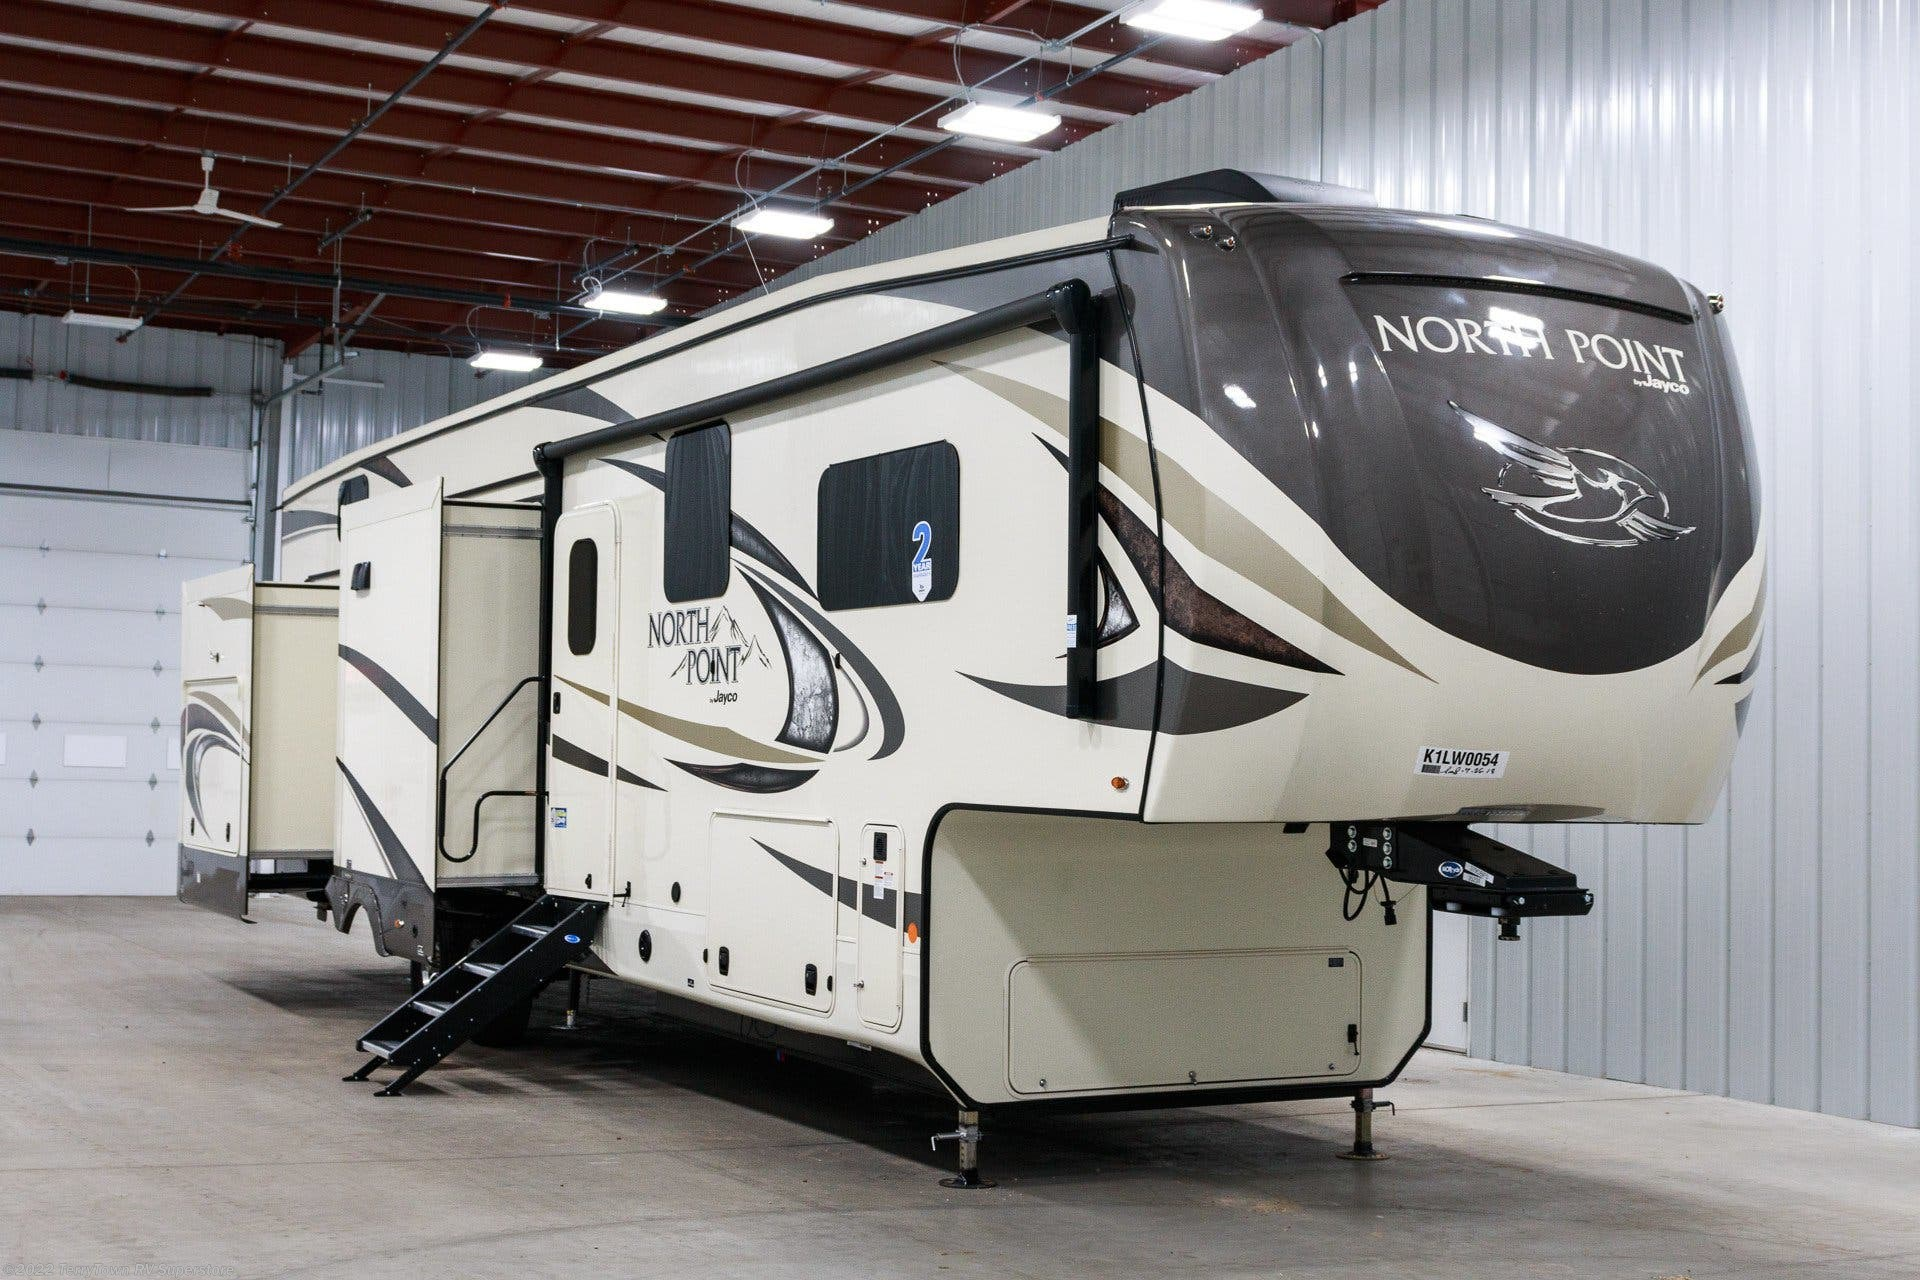 North Point Rv >> 2019 Jayco Rv North Point 379dbfs For Sale In Grand Rapids